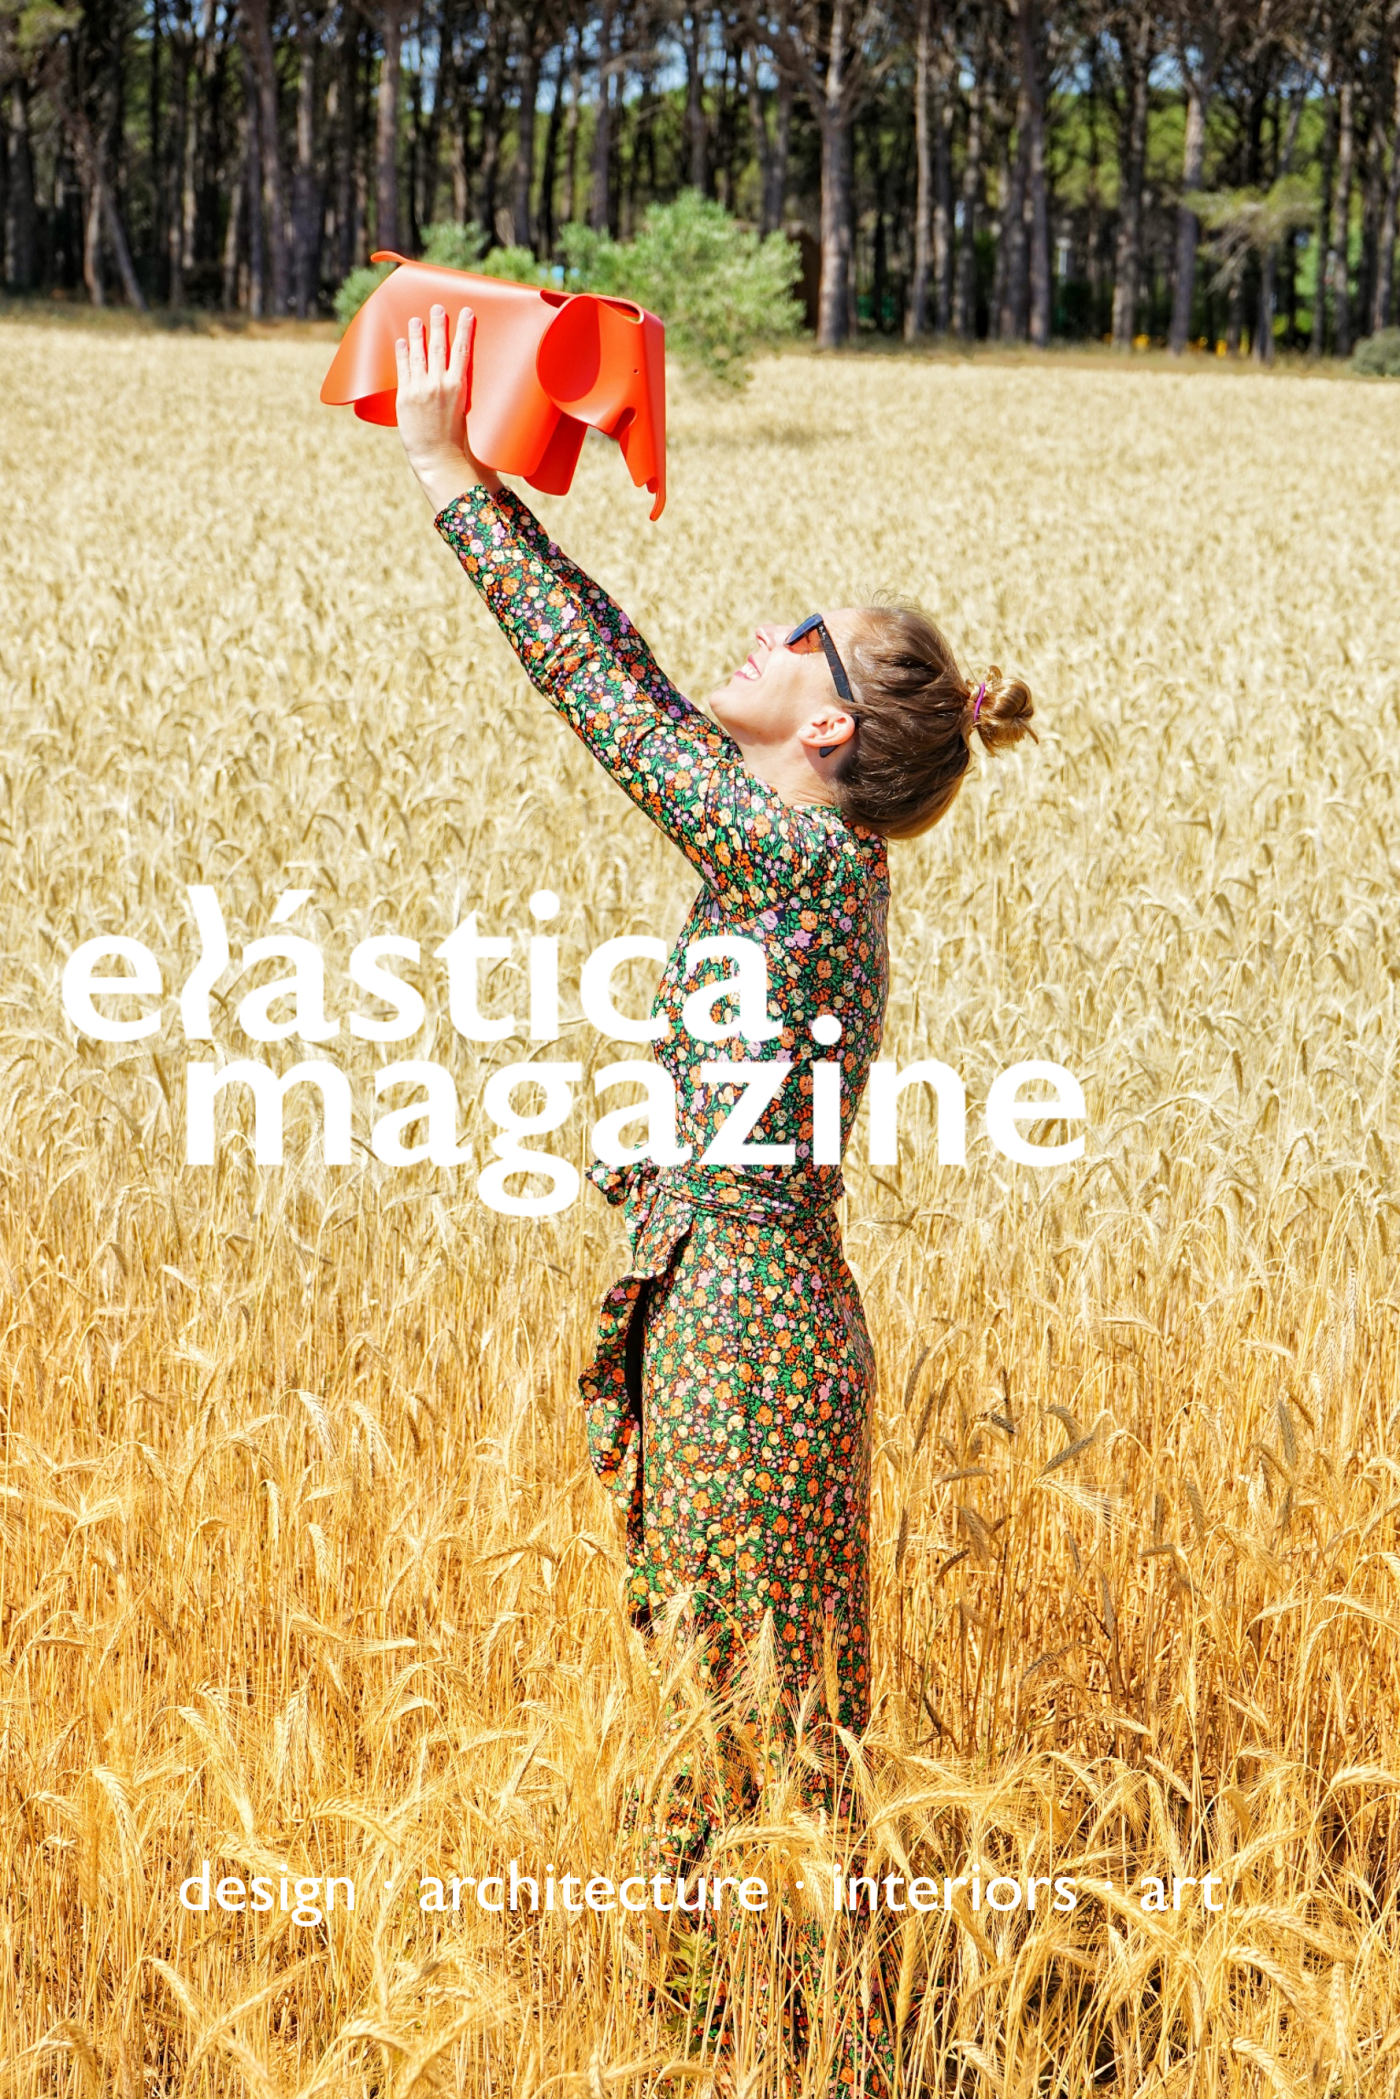 Elástica Magazine: a contemporary magazine for modern families